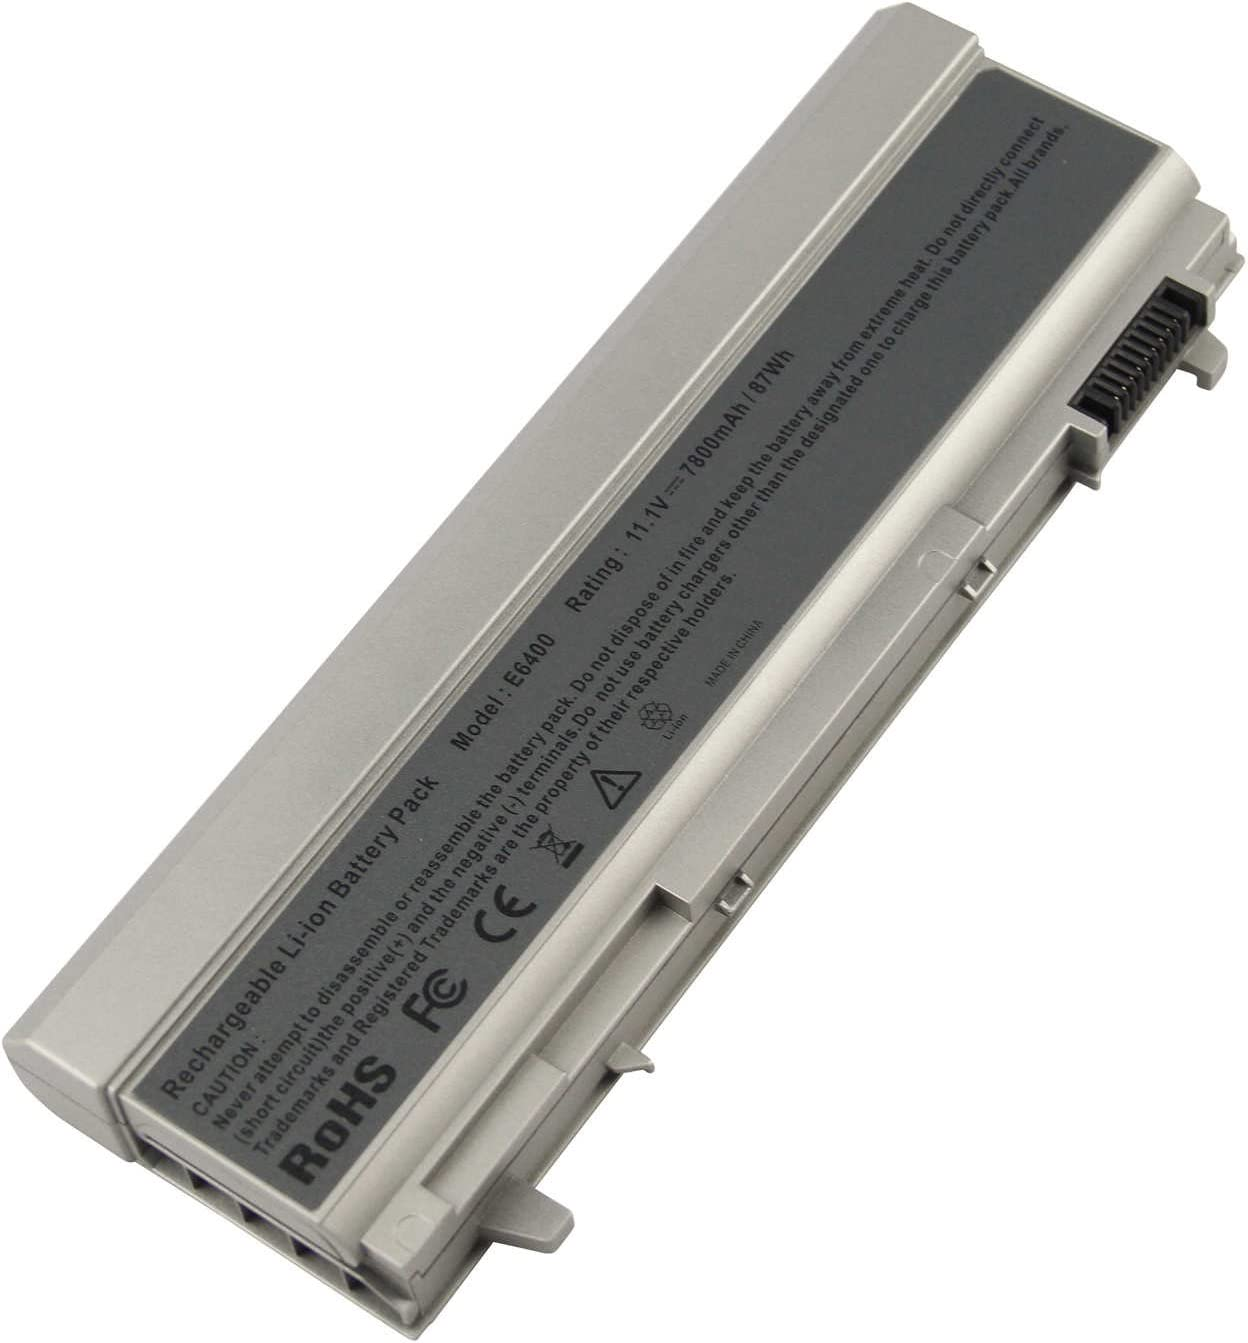 AC Doctor INC Laptop Battery for Dell Latitude E6400 E6500 E6410 E6510,Precision M2400 M4400 M4500,Fits P/N:PT434 PT435 PT436 PT437 KY477 KY265 KY266 KY268,12 Cells,7800mAh